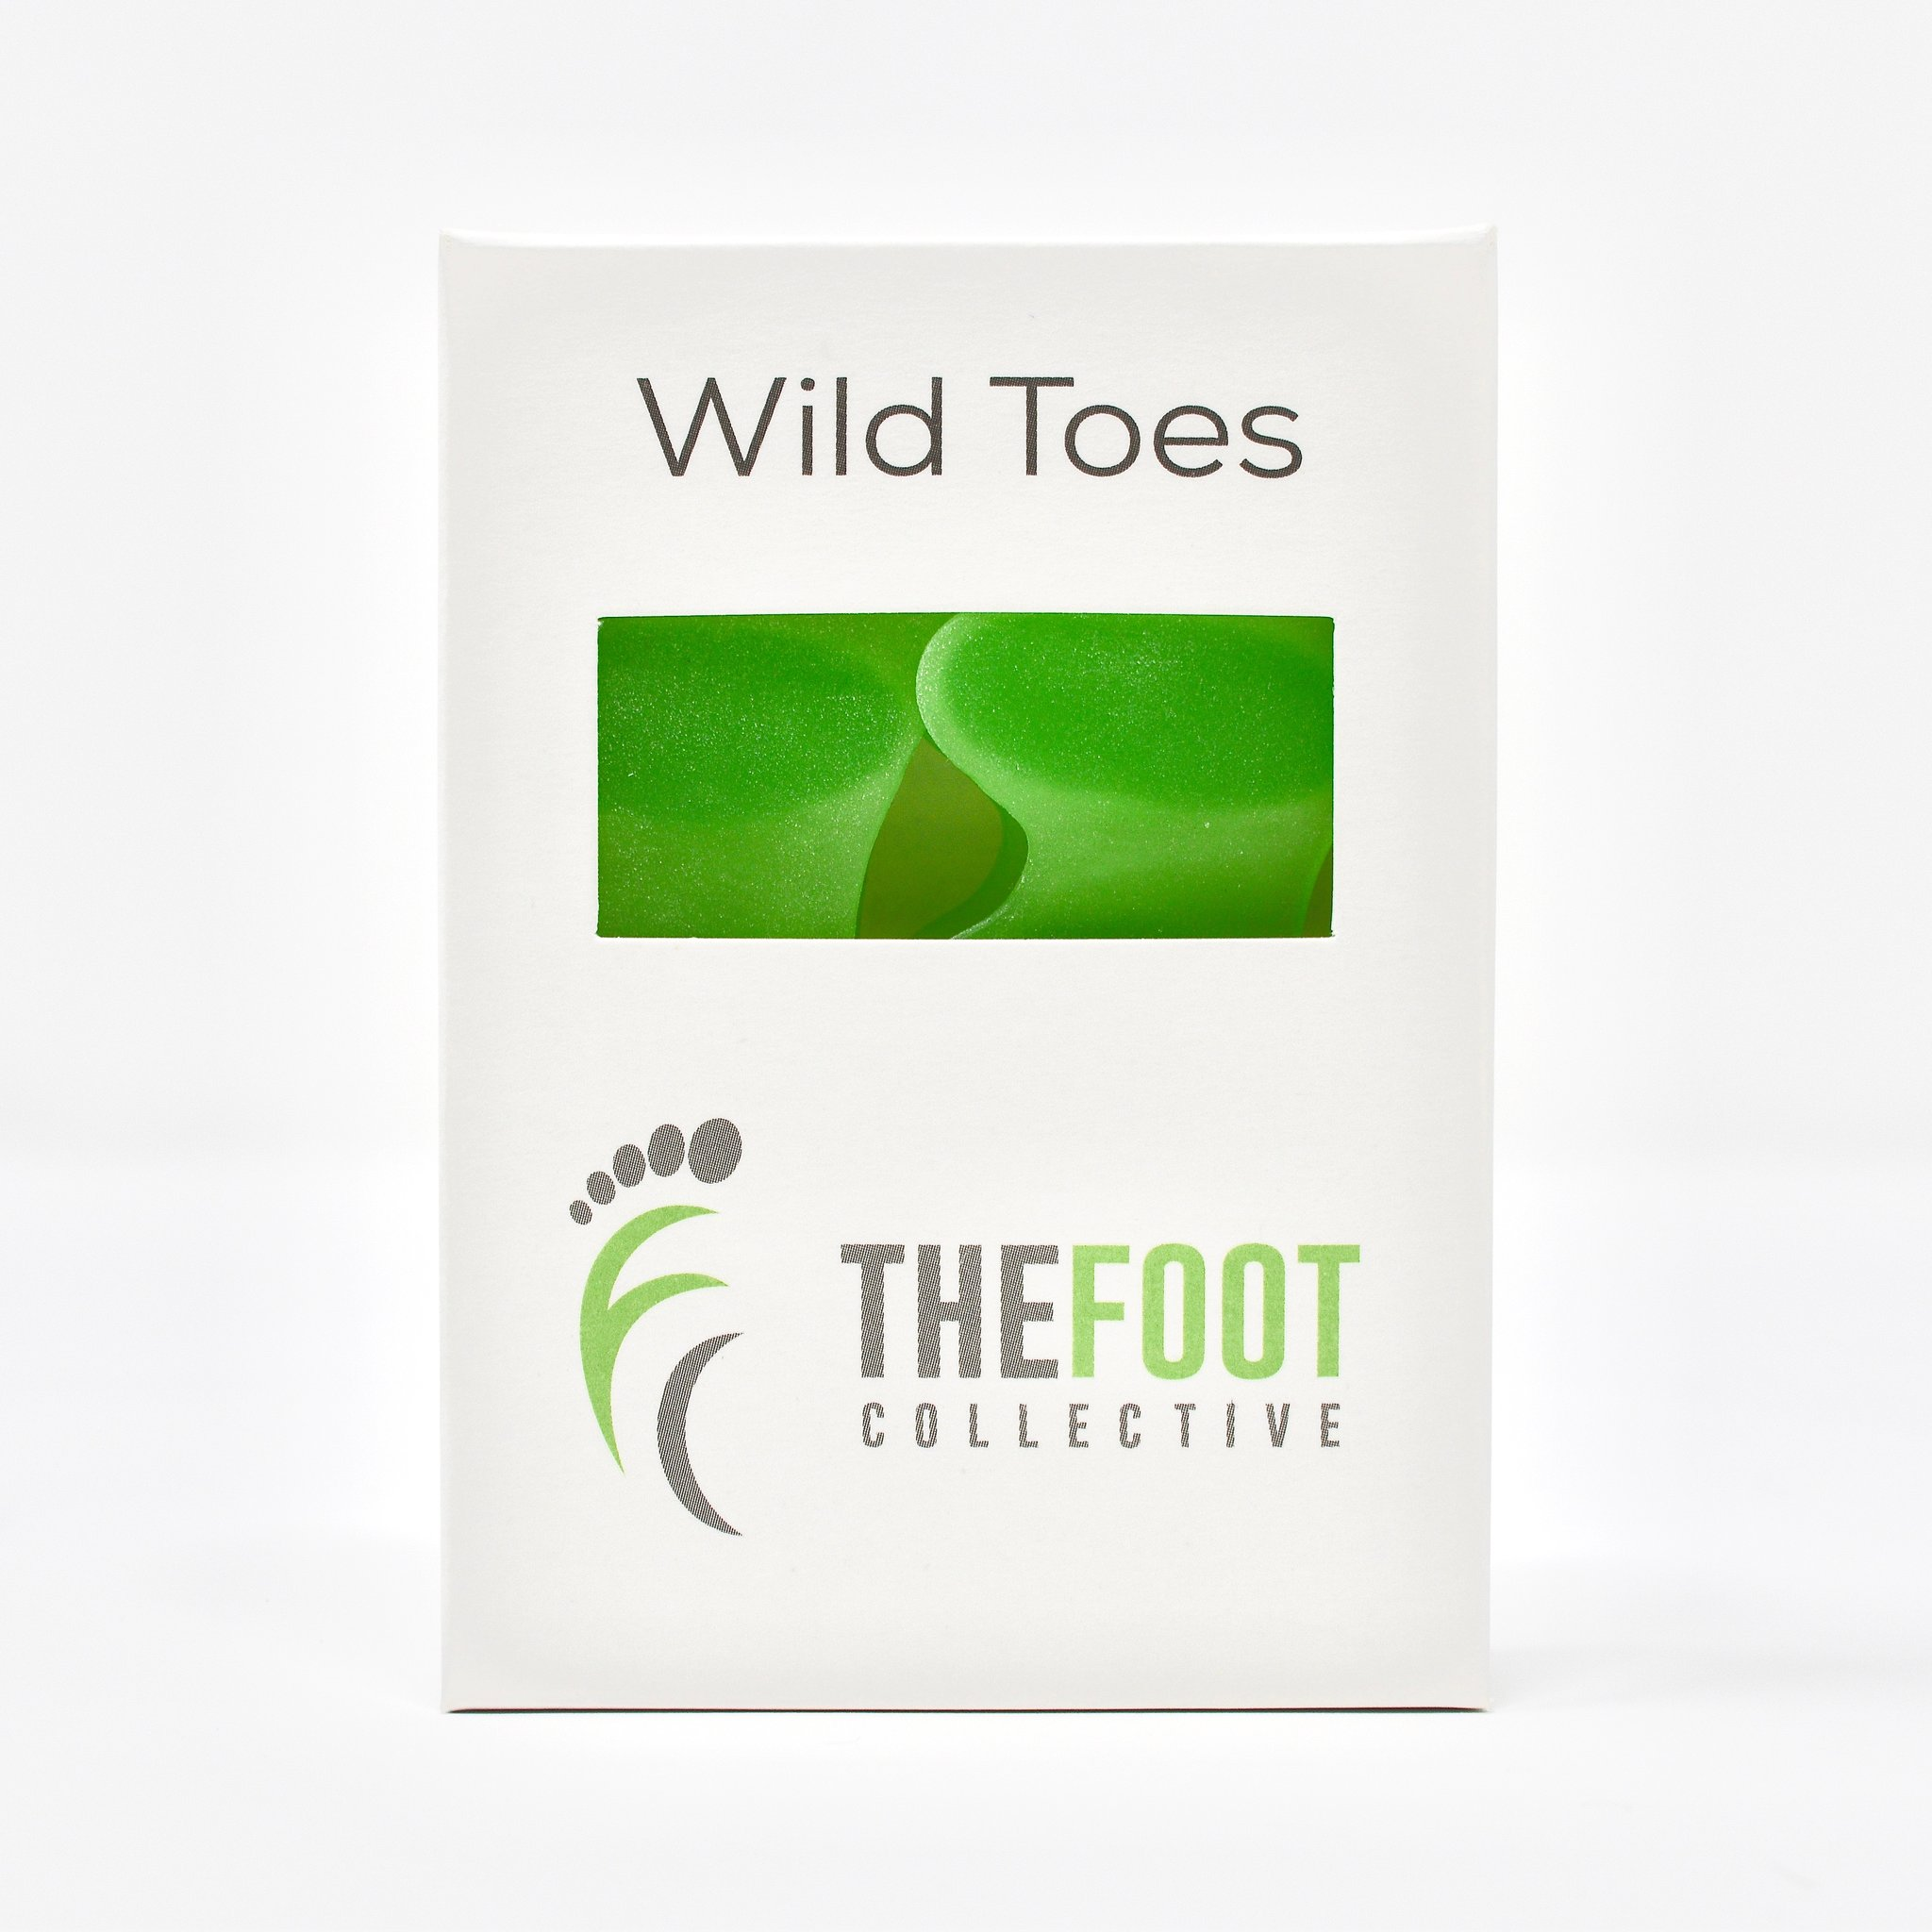 Barefoot shoe toe spacer